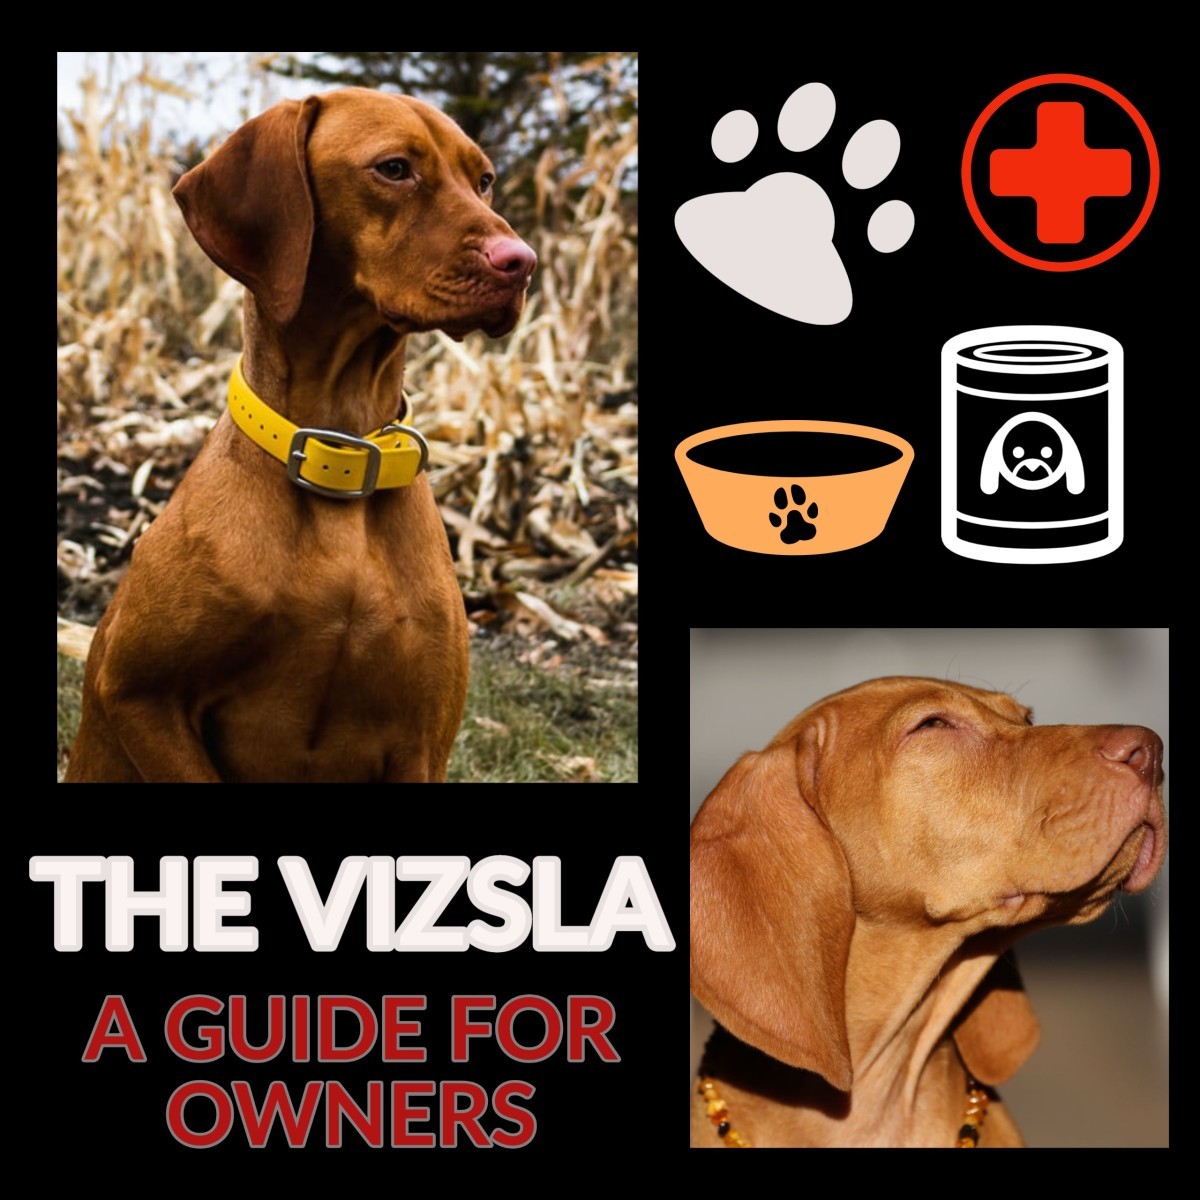 The Vizsla: A Guide for Owners.